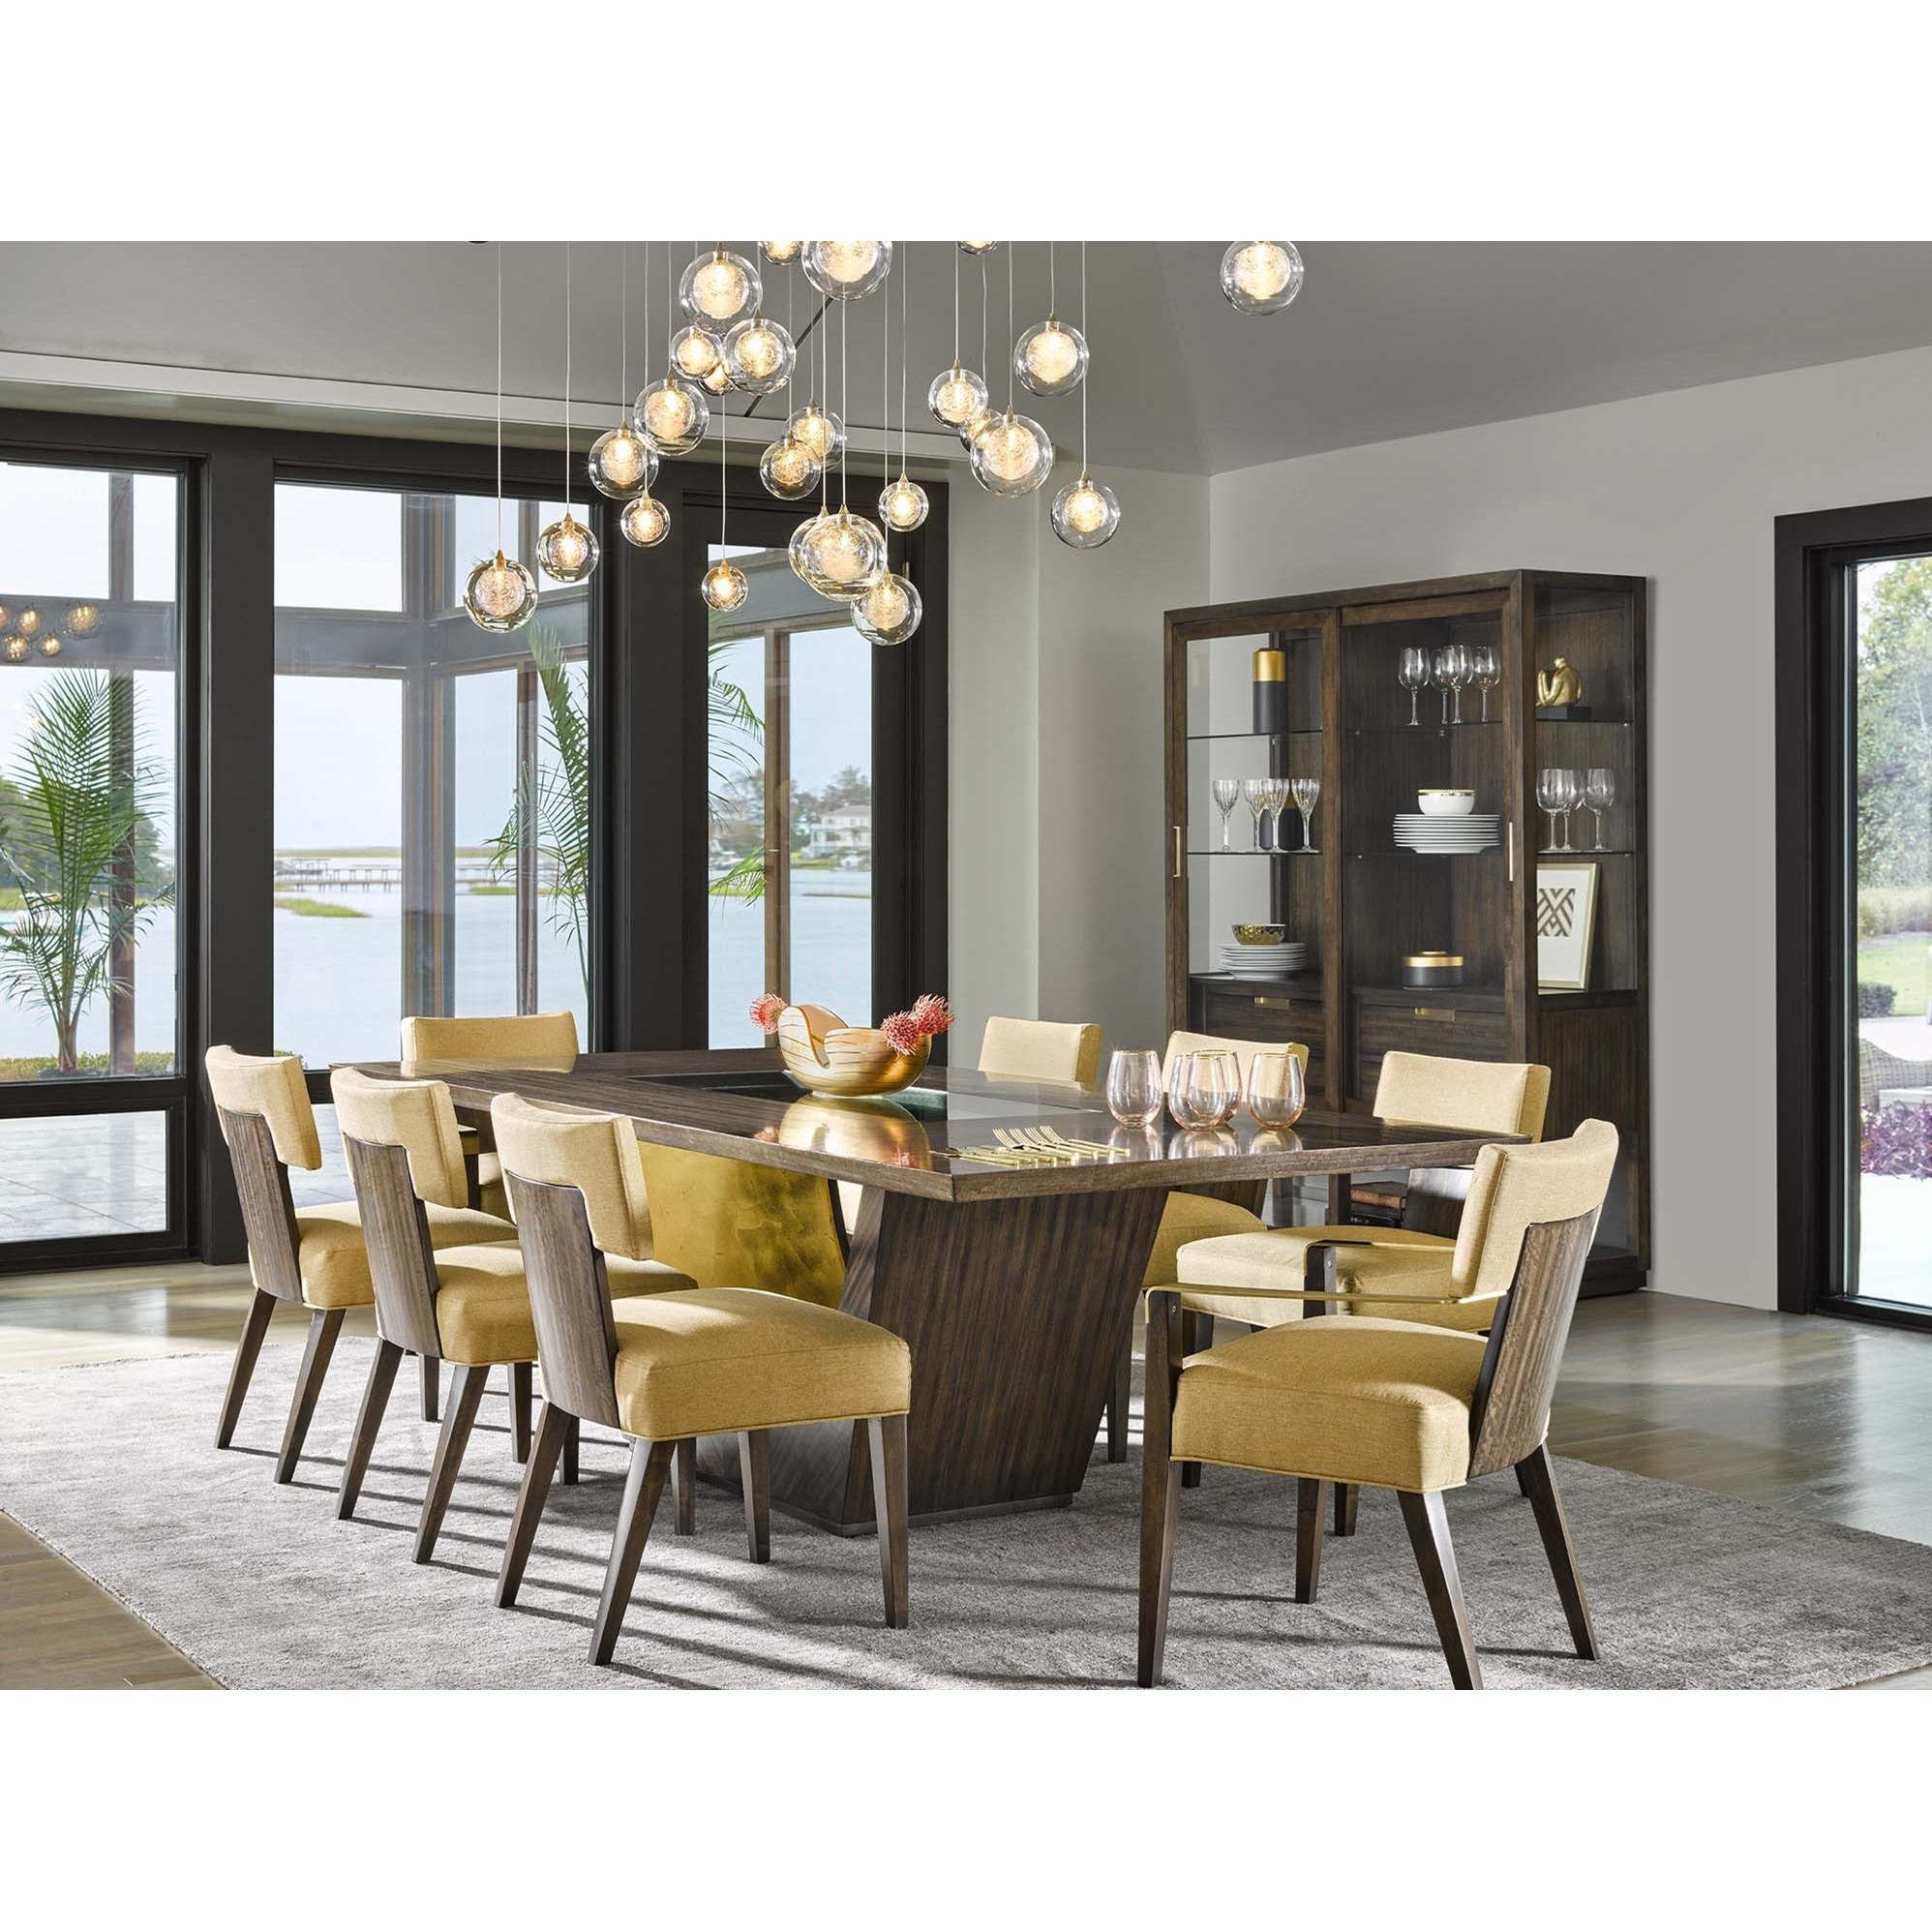 "Fine Furniture Stores Near Me: Fine Furniture Design Runaway Tegola 84"" Dining Table With"